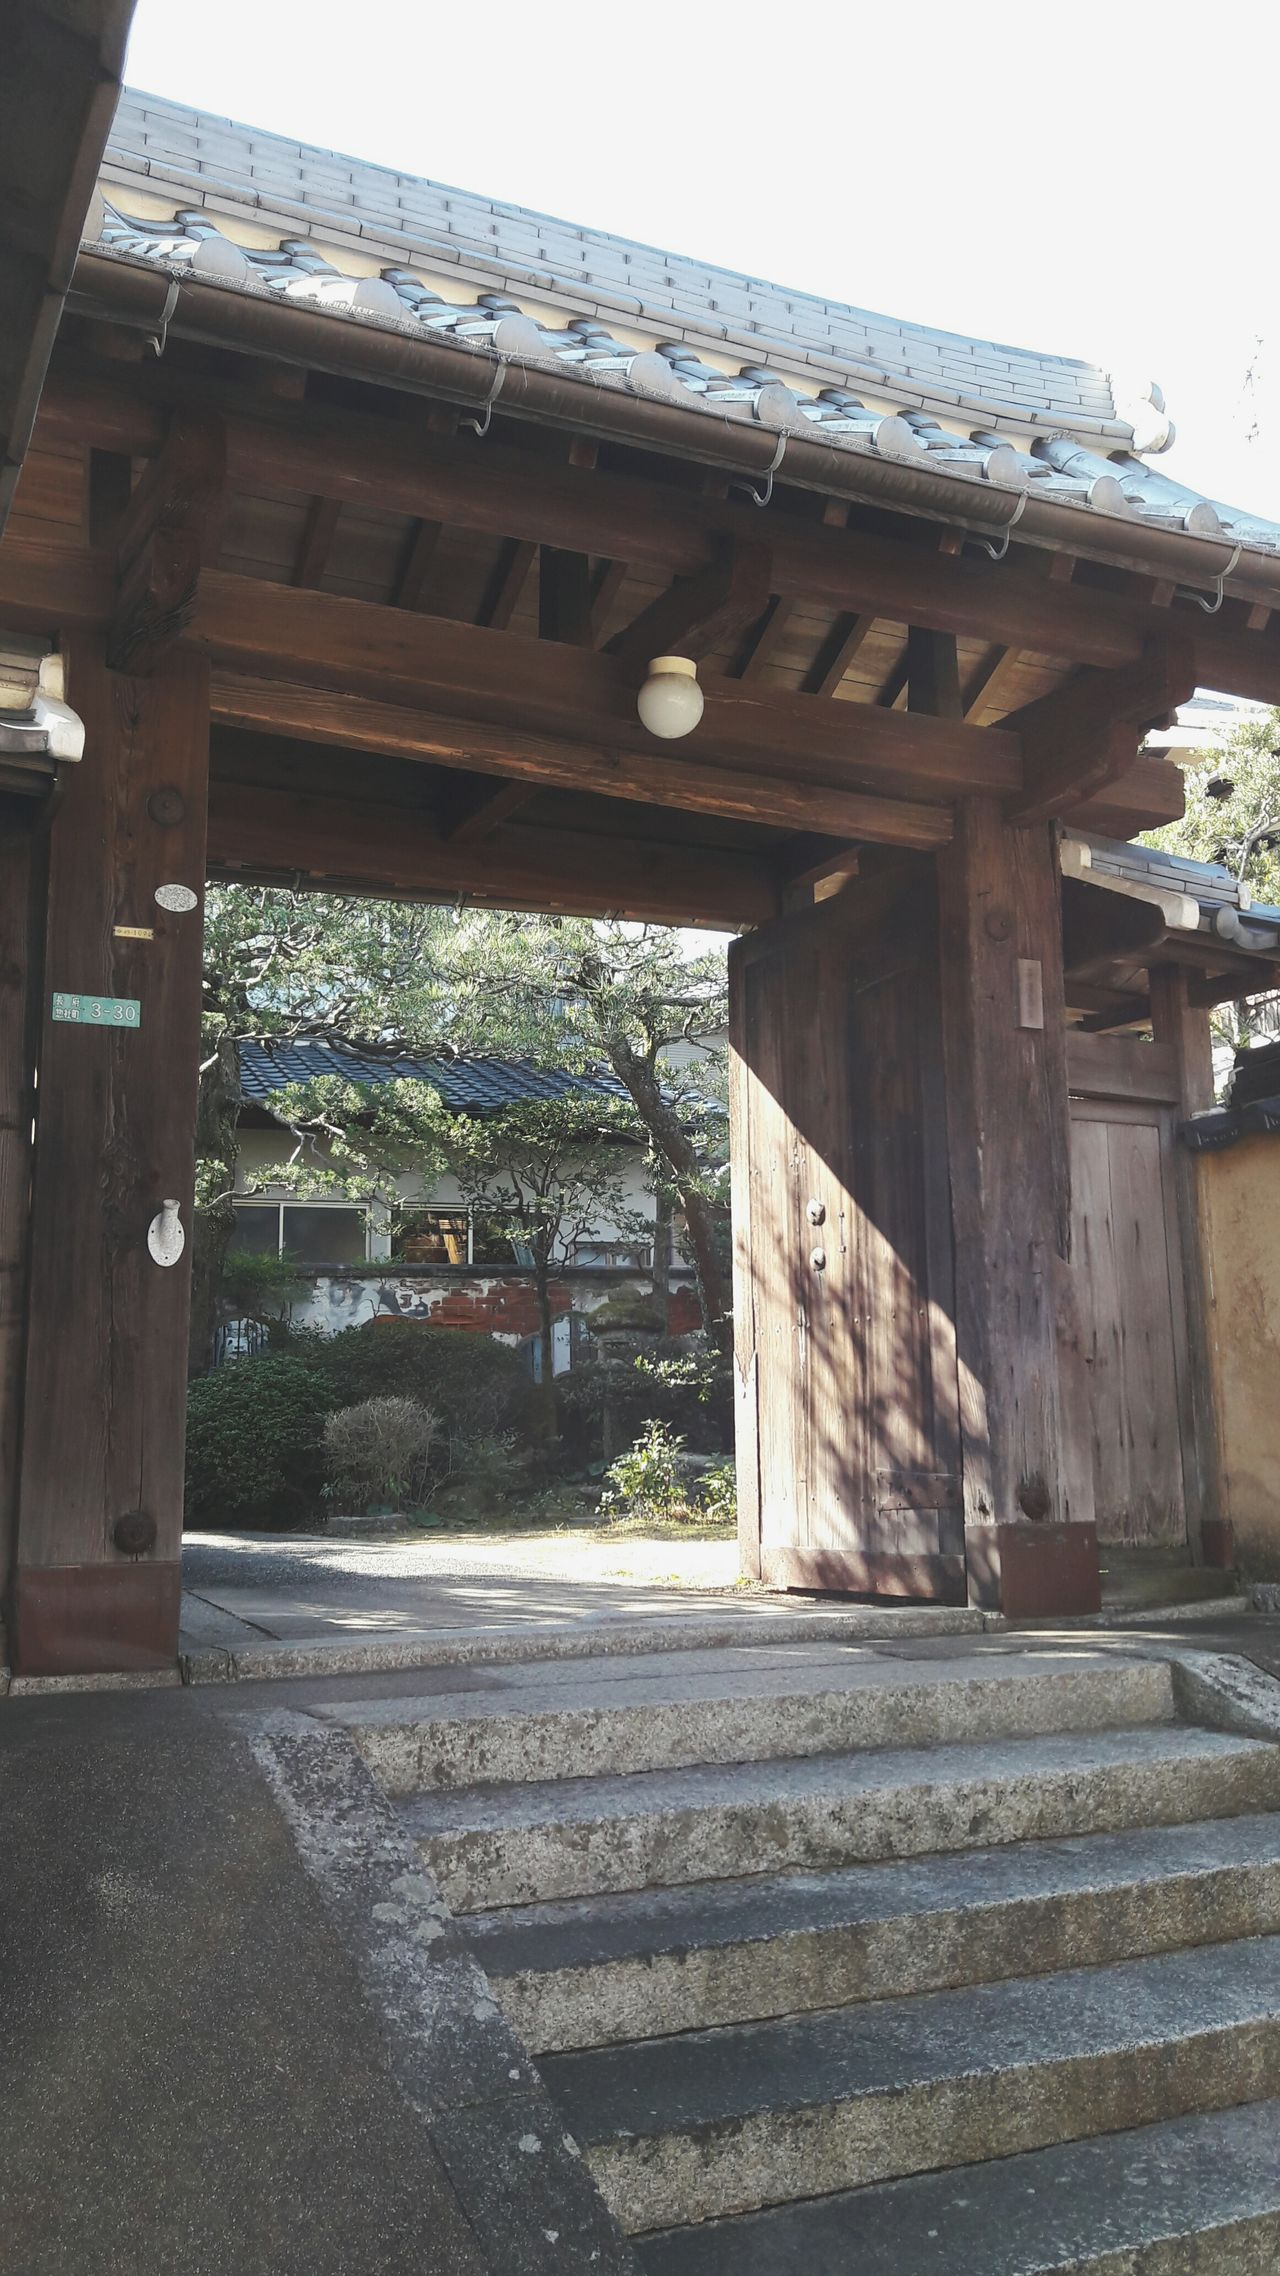 Built Structure Day Outdoors No People Trip To Japan Travel Japan Wooden Gate